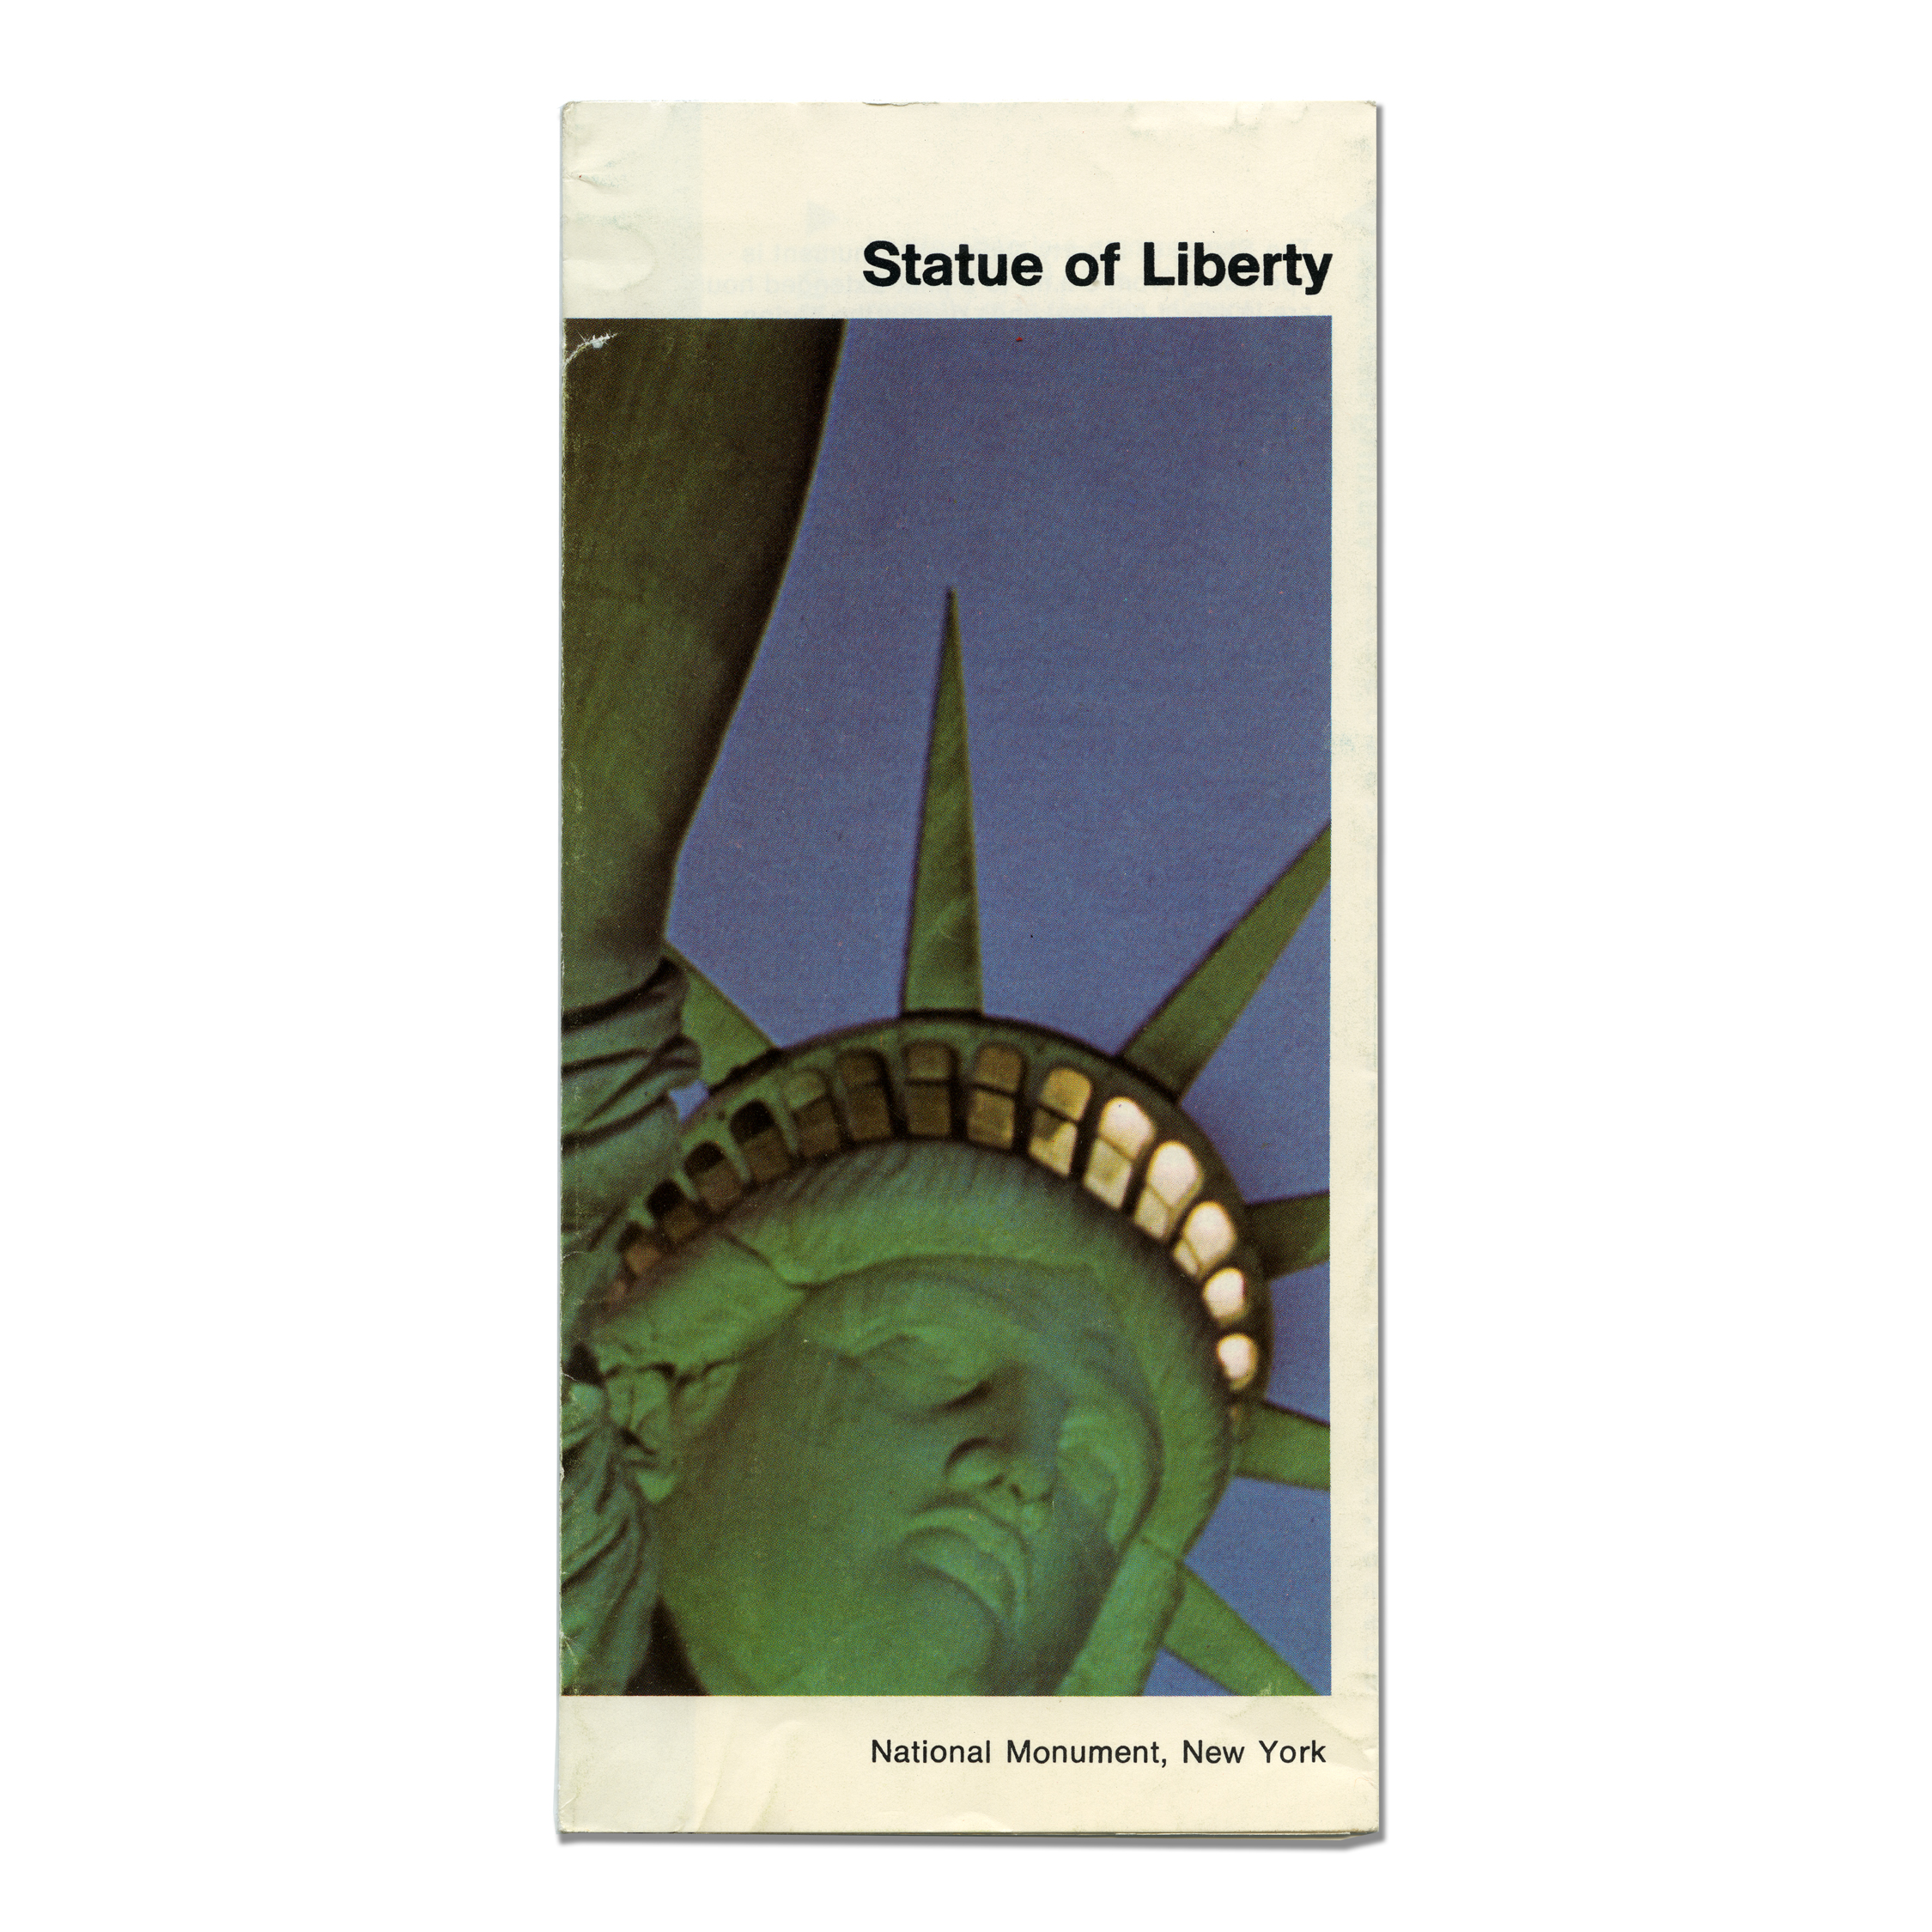 1976_statue_of_liberty_national_monument_brochure.jpg